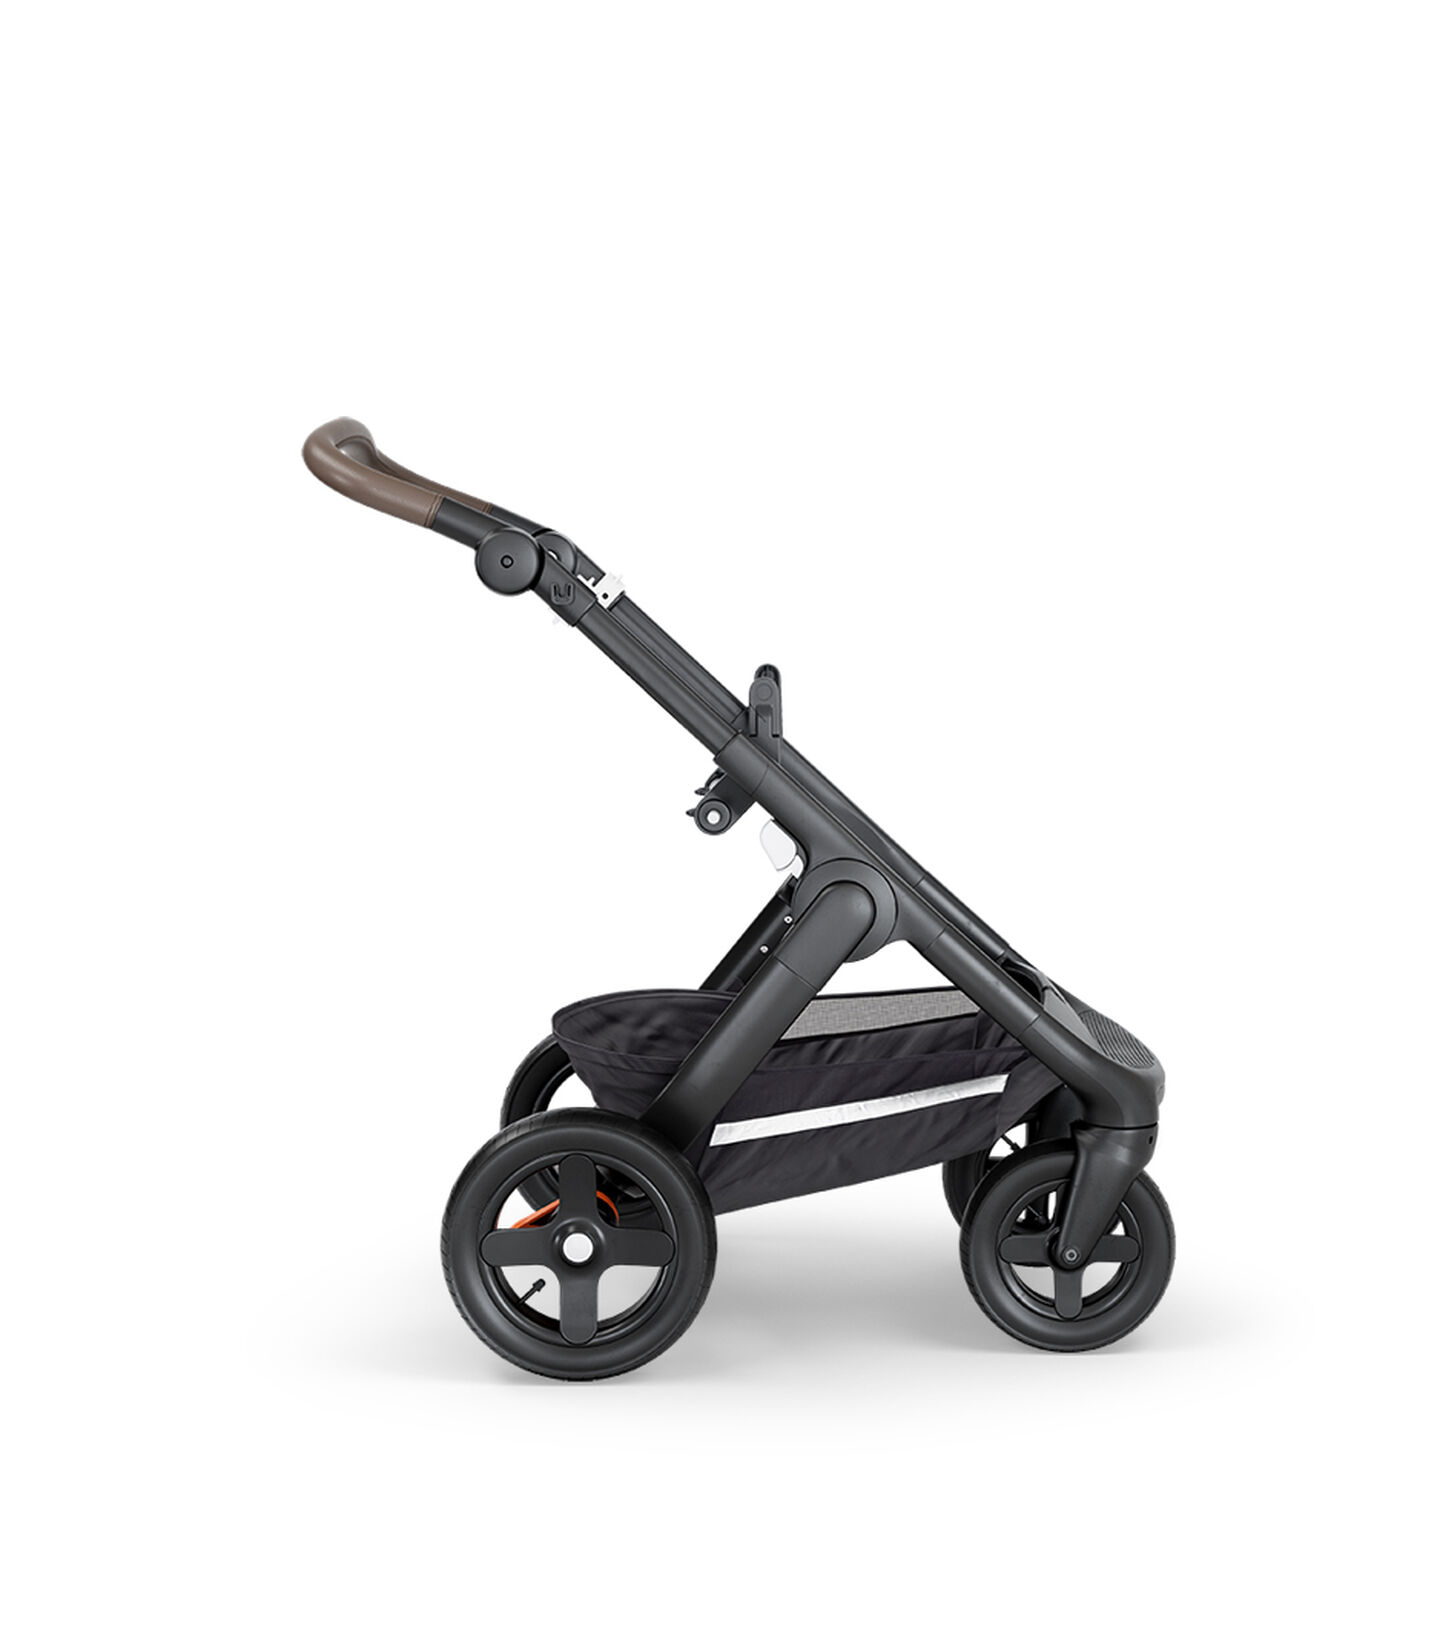 Stokke® Trailz™ with Black Chassis, Brown Leatherette and Terrain Wheels.